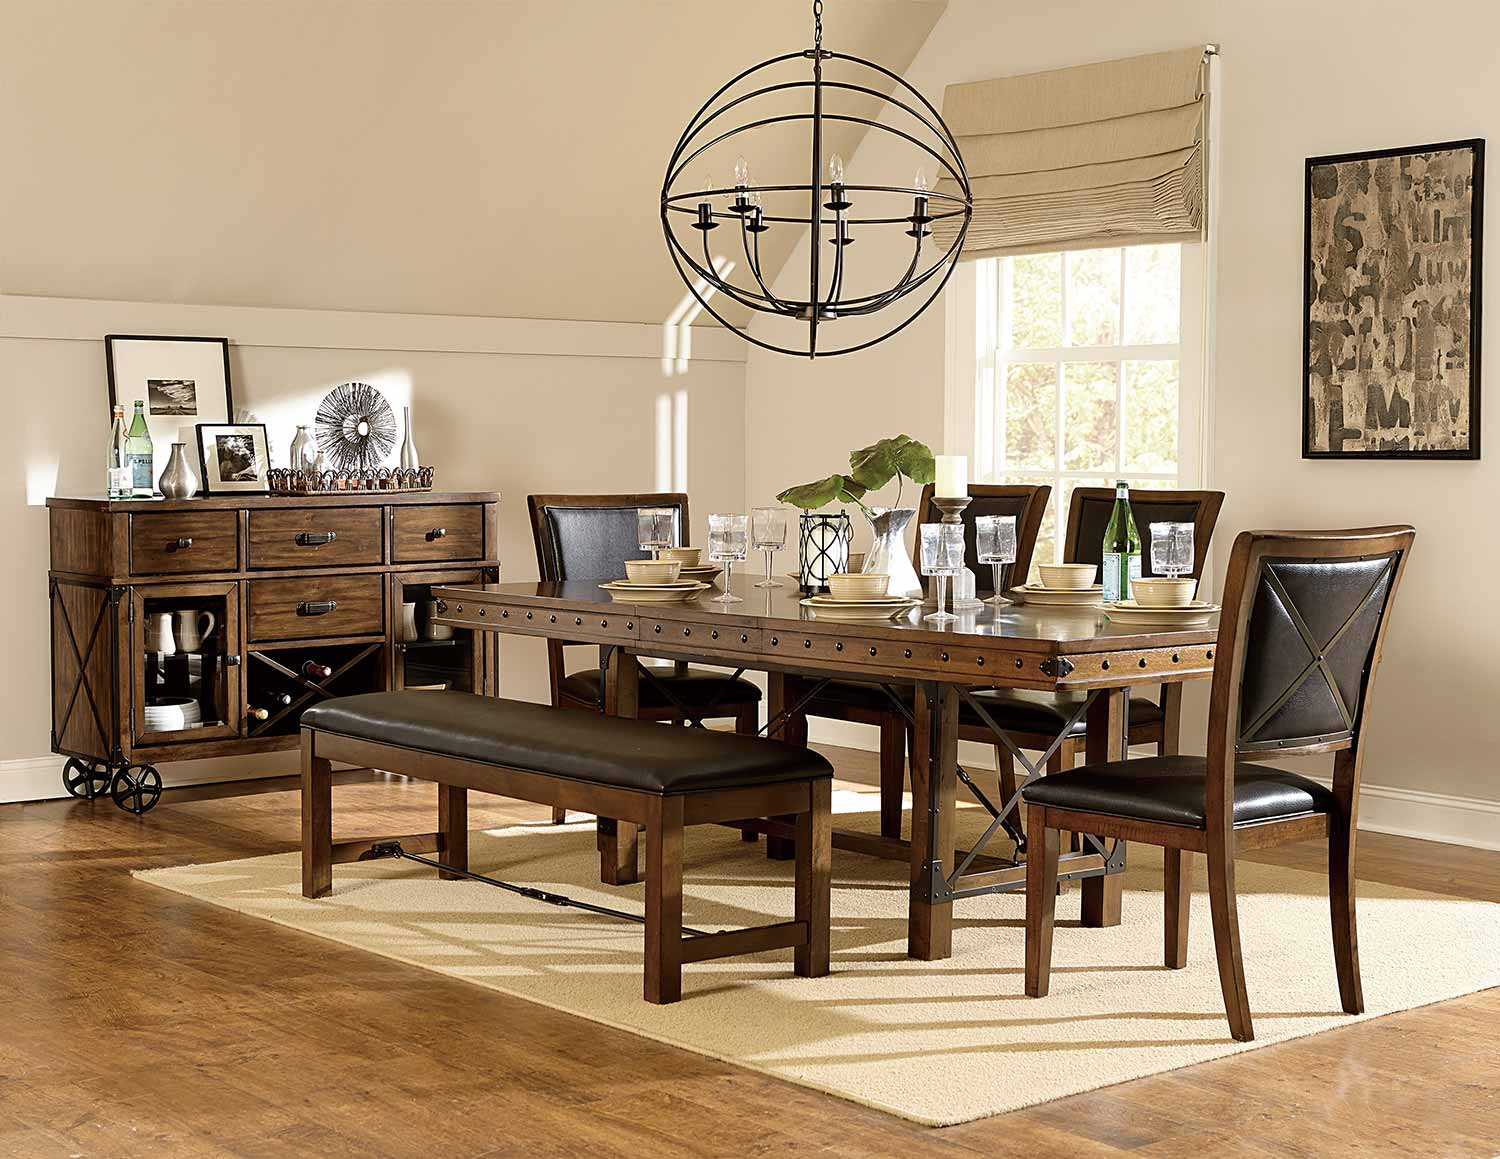 Homelegance Urbana Trestle Dining Set